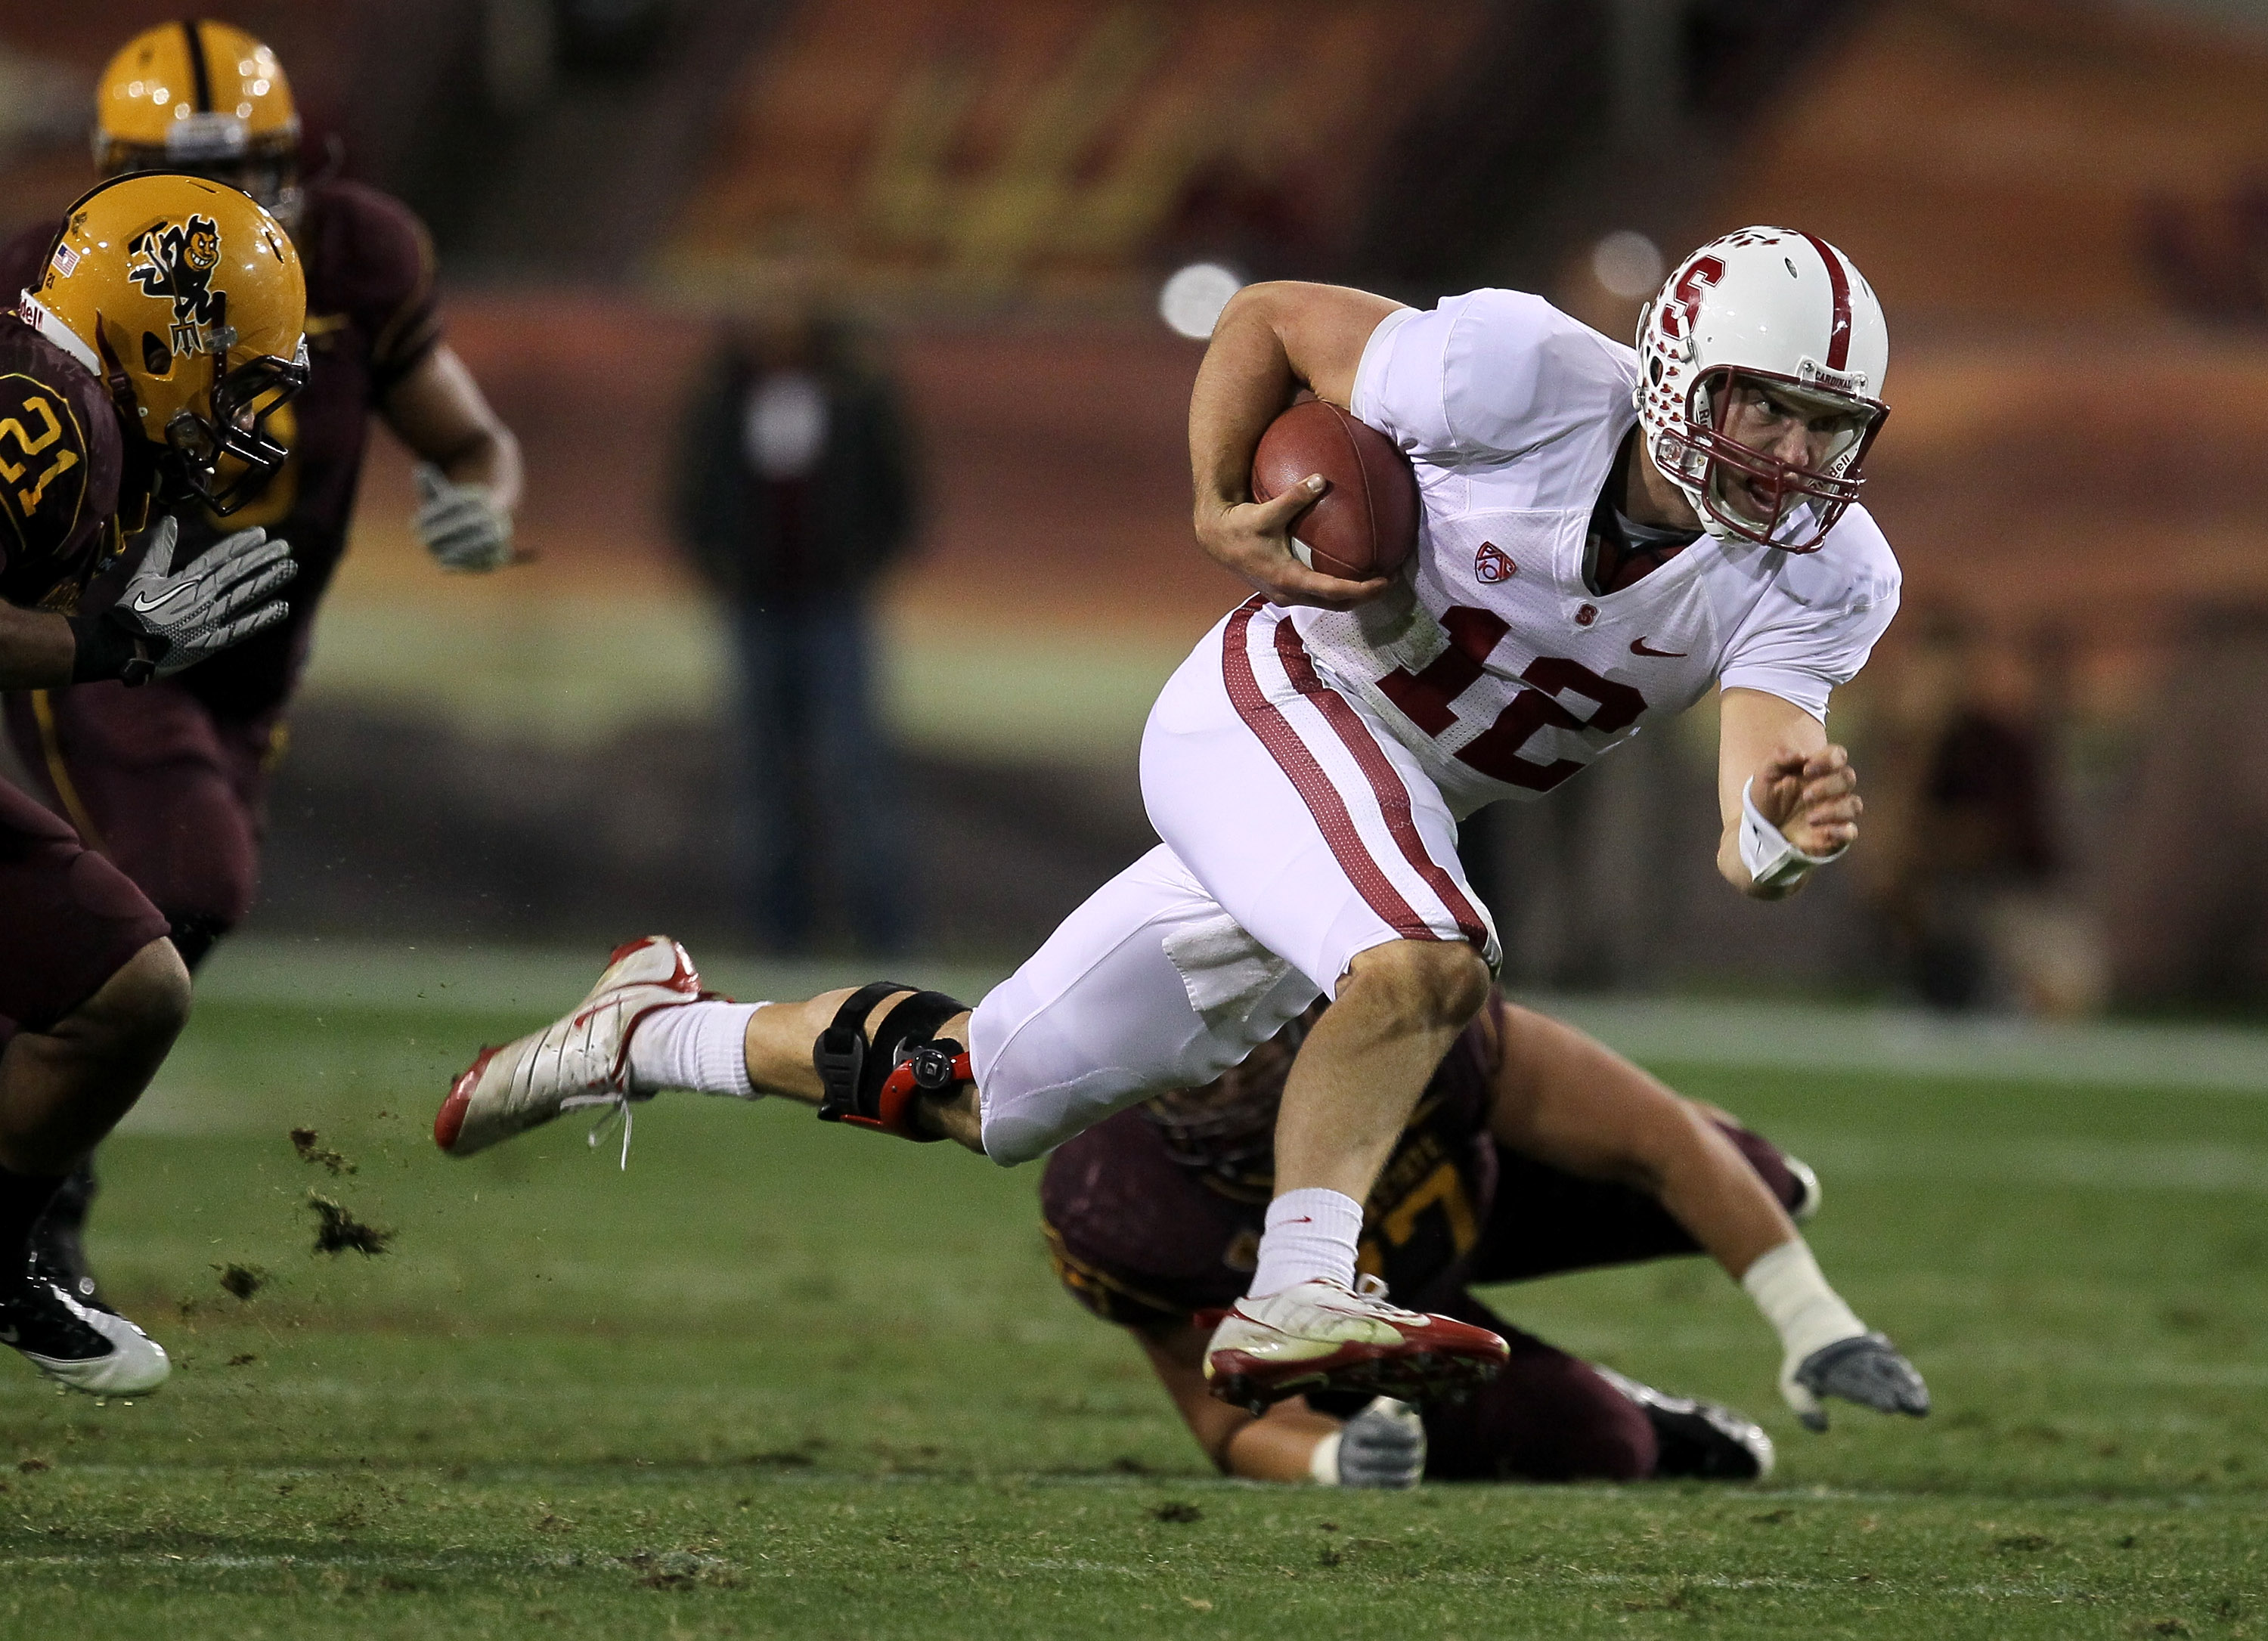 TEMPE, AZ - NOVEMBER 13:  Quarterback Andrew Luck #12 of the Stanford Cardinal scrambles for a first down against the Arizona State Sun Devils at Sun Devil Stadium on November 13, 2010 in Tempe, Arizona.The Cardinal won 17-13.  (Photo by Stephen Dunn/Gett